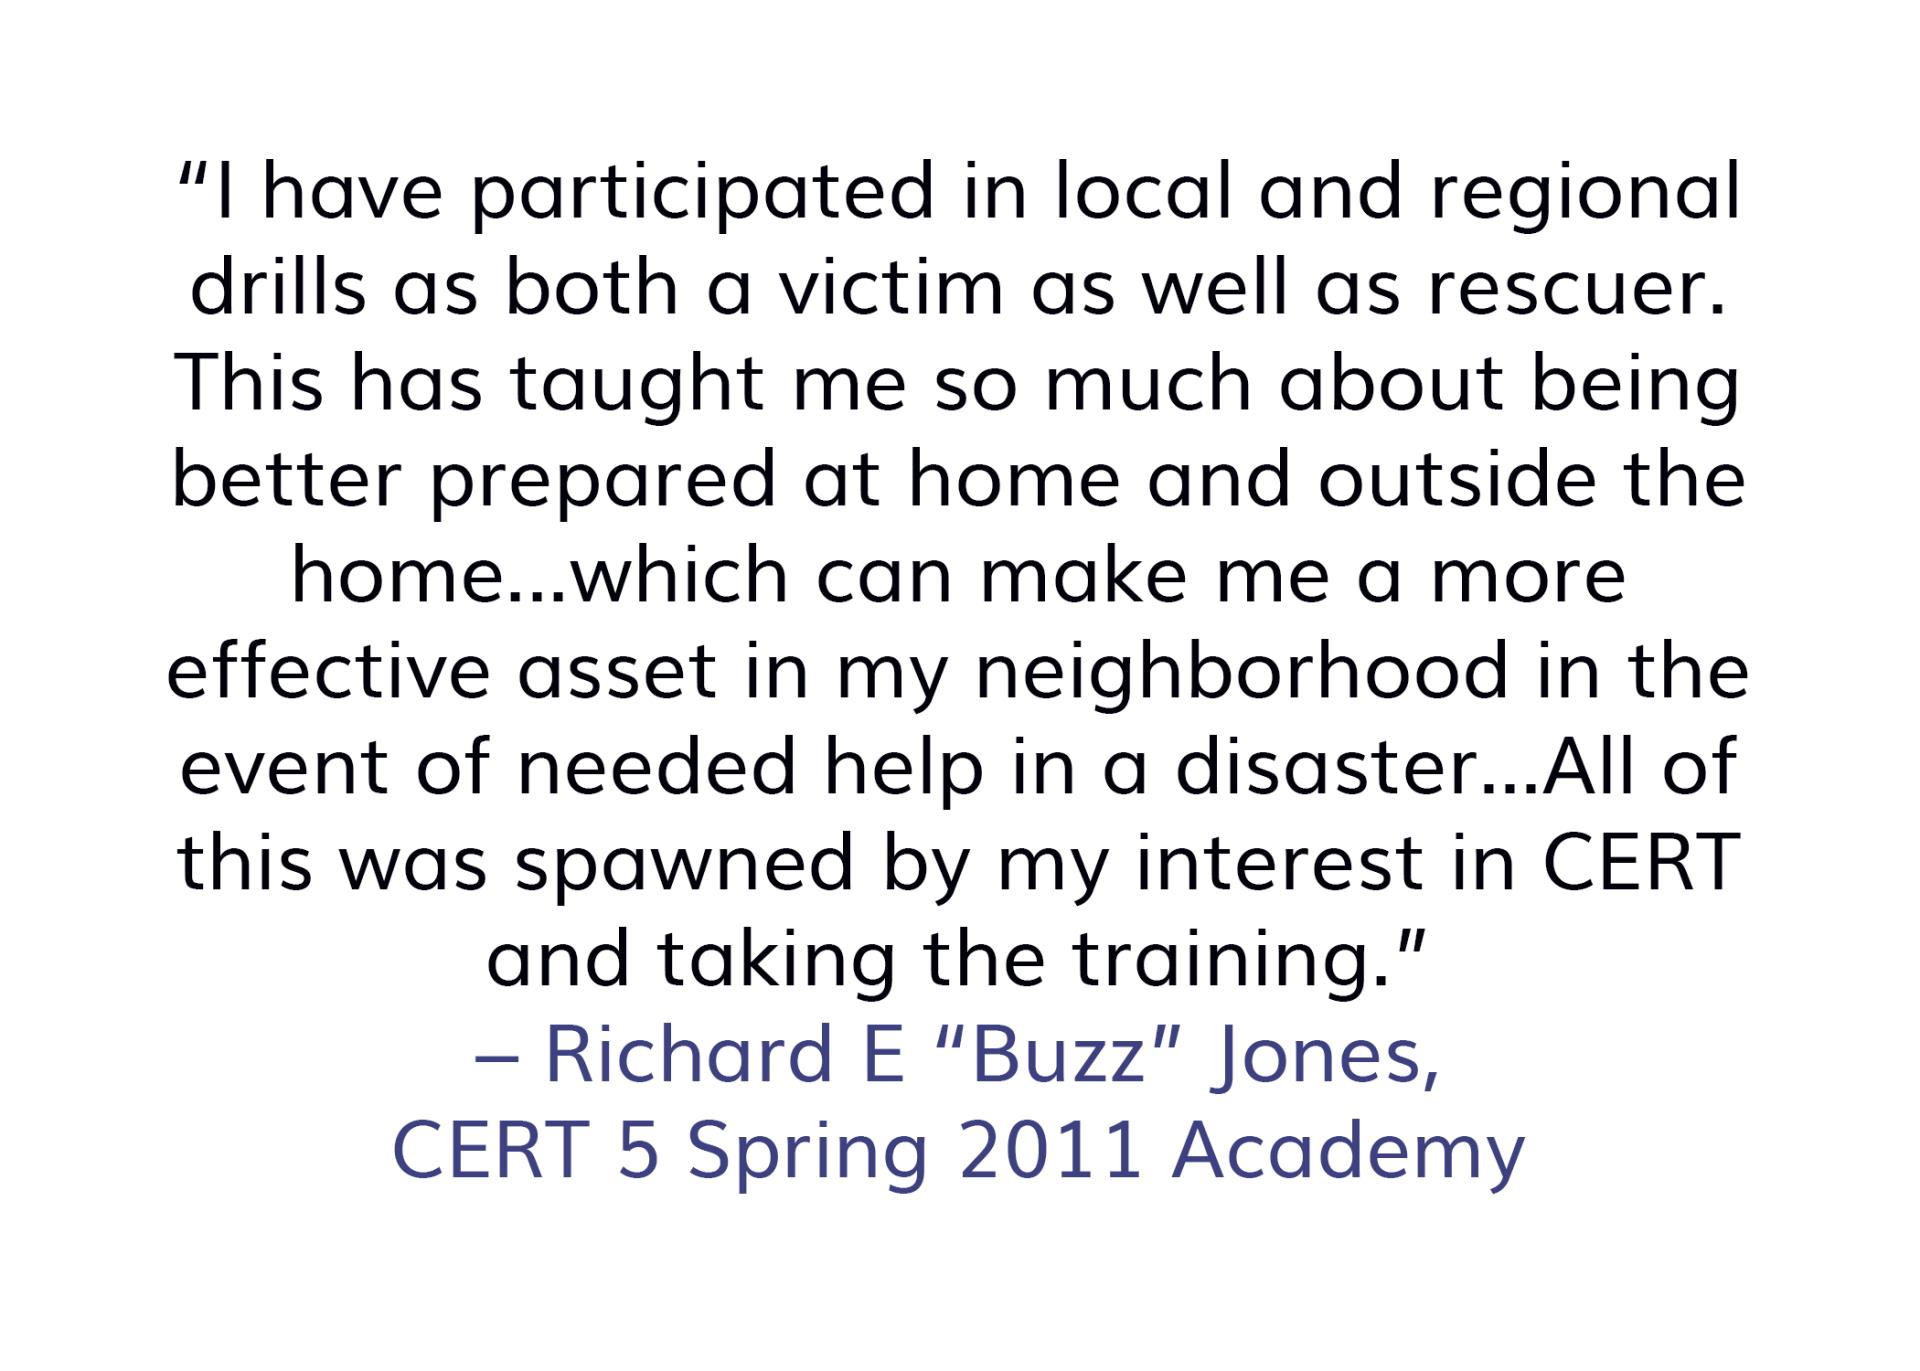 "Richard E ""Buzz"" Jones quote about CERT"